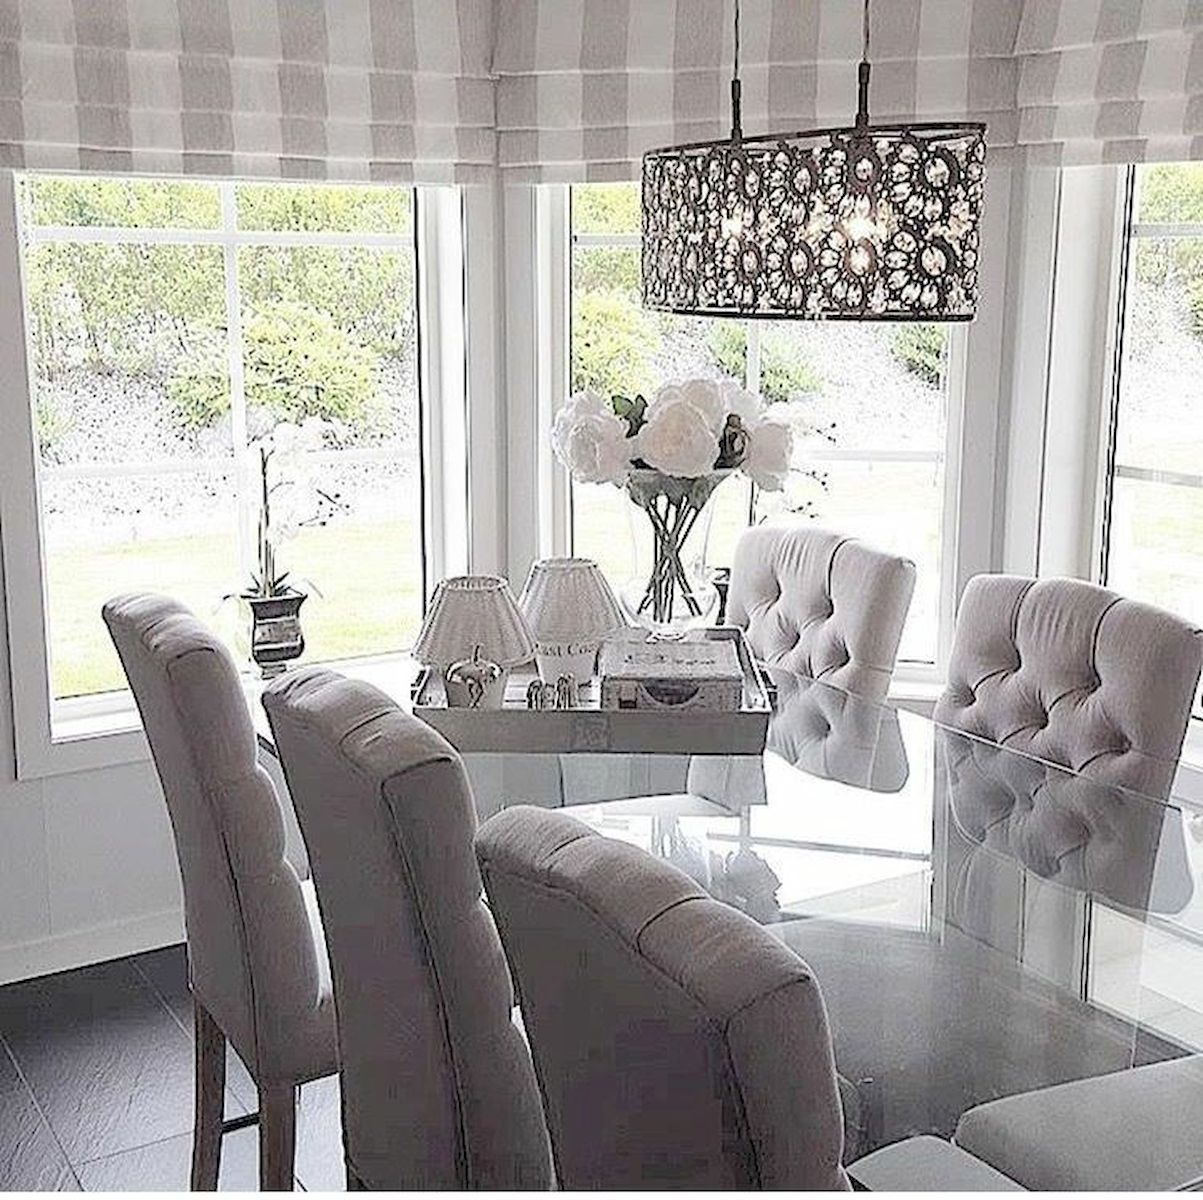 50 Gorgeous Dinning Room Design and Decor Ideas (31)